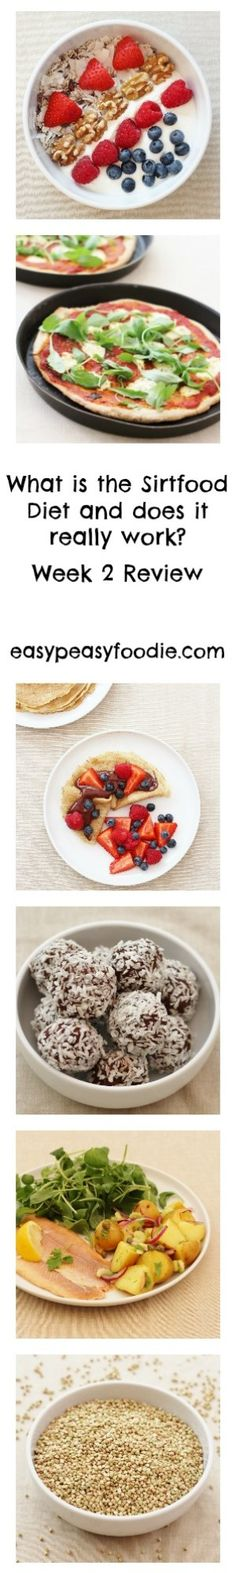 51 best sirtfood diet images on pinterest healthy eating habits what is the sirtfood diet and does it really work part 3 forumfinder Image collections